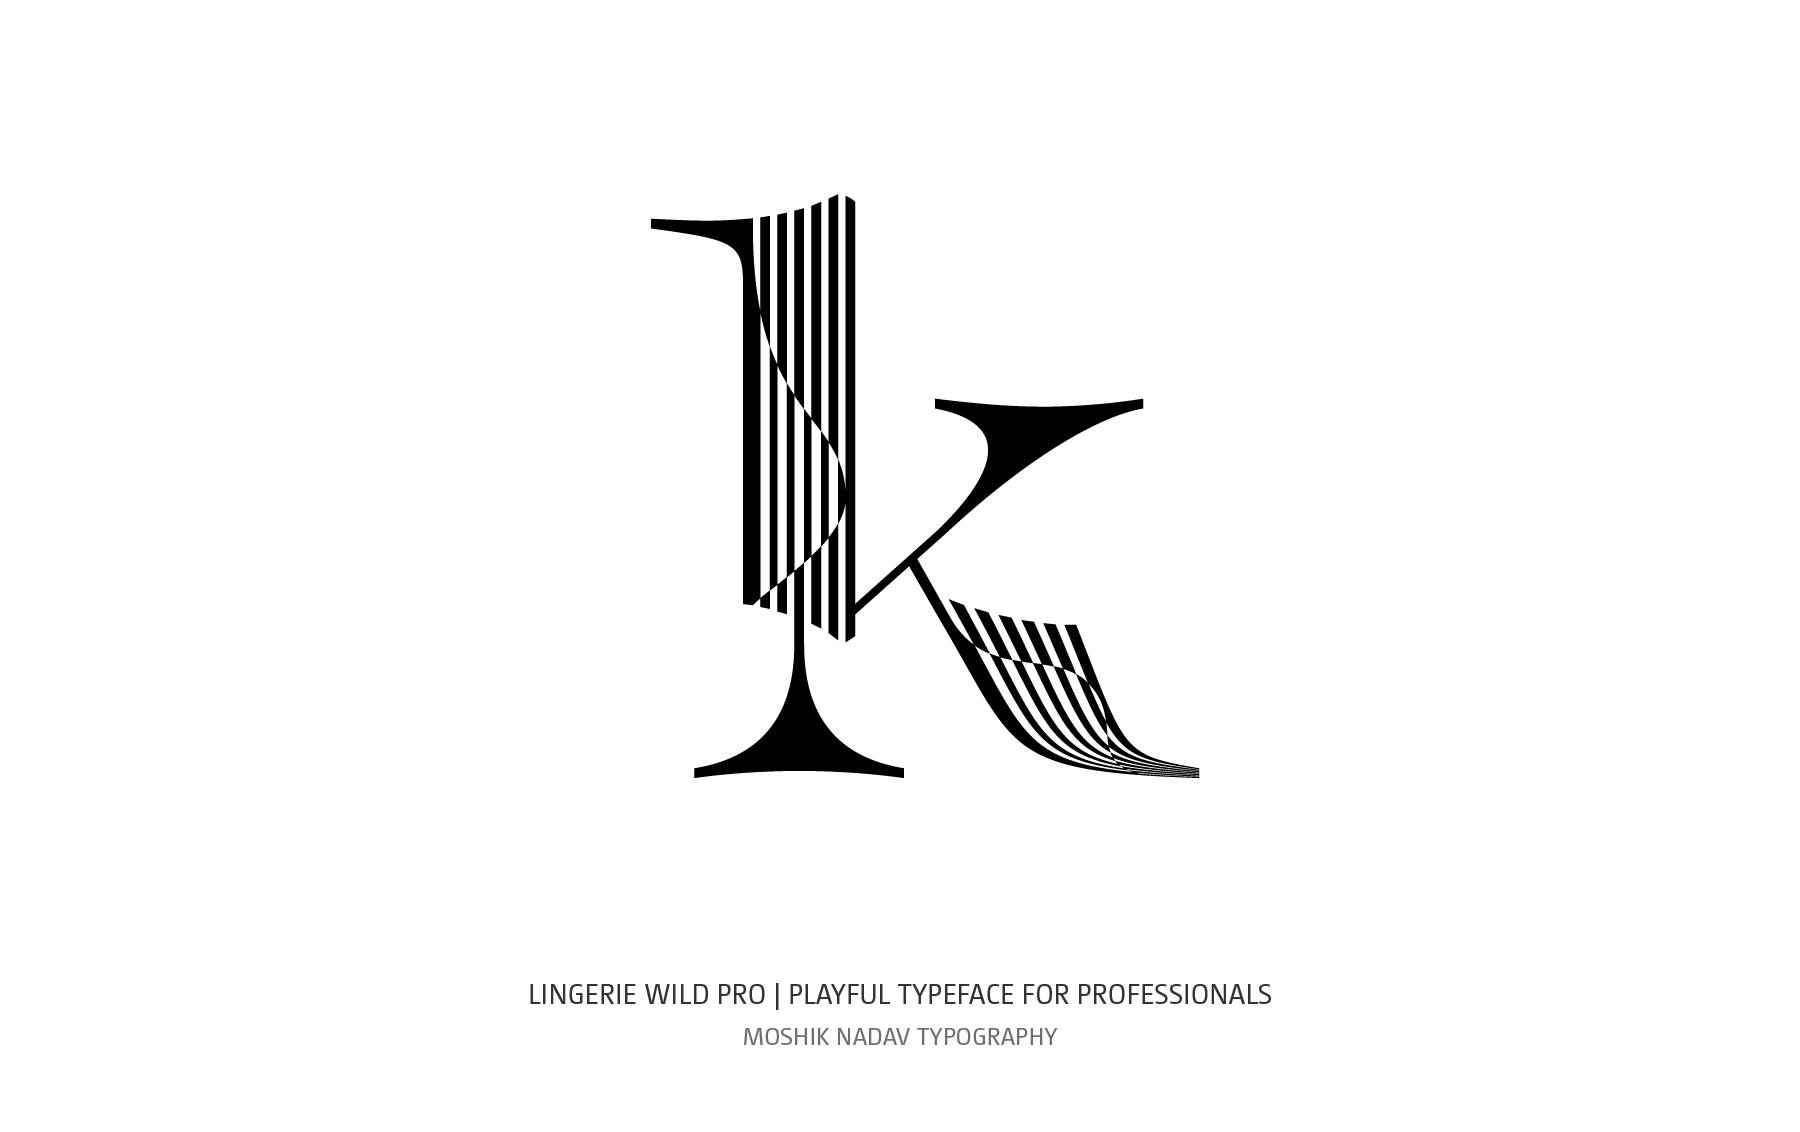 lowercase k logo designed with Lingerie Wild Pro Typeface by Moshik Nadav Typography